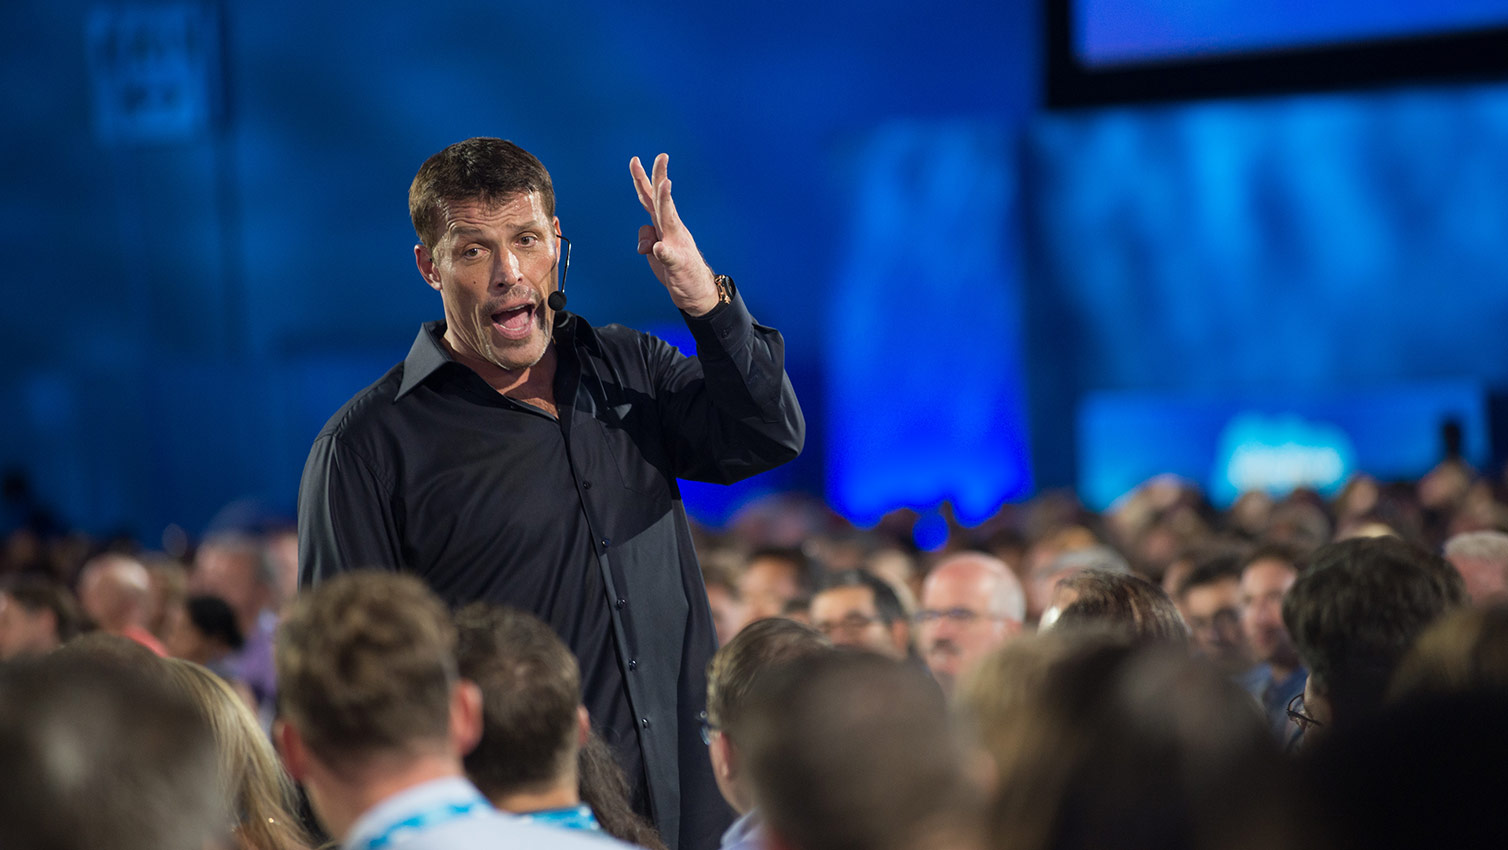 The Power Of Engagement Tony Robbins Inspires At Df14